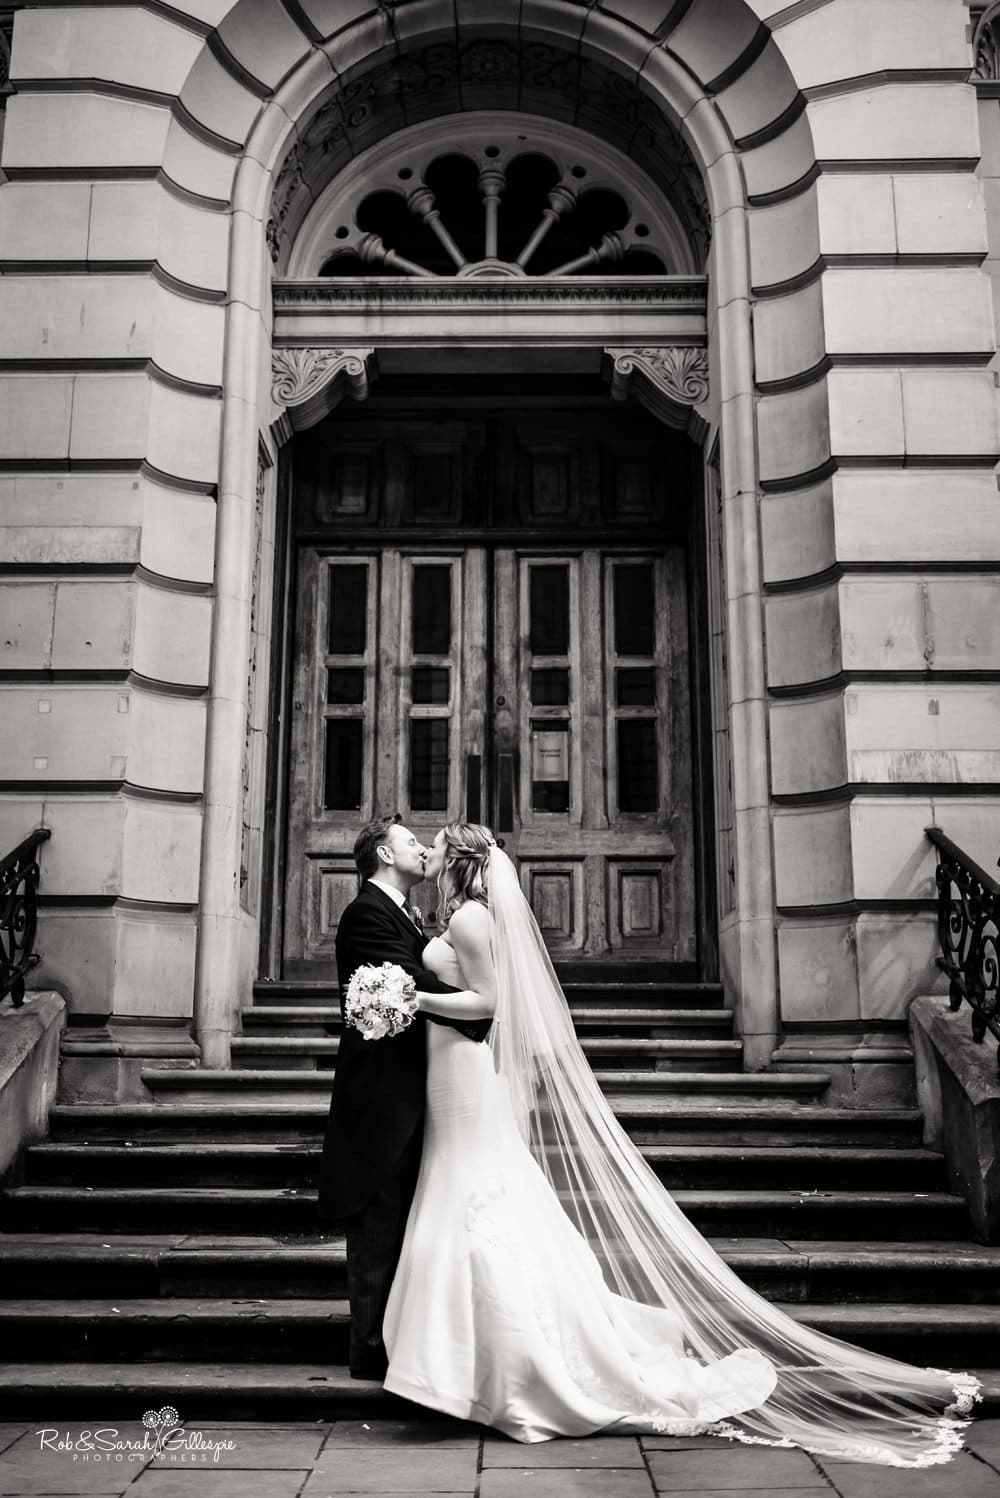 Bride and groom kiss in front of arched doorway